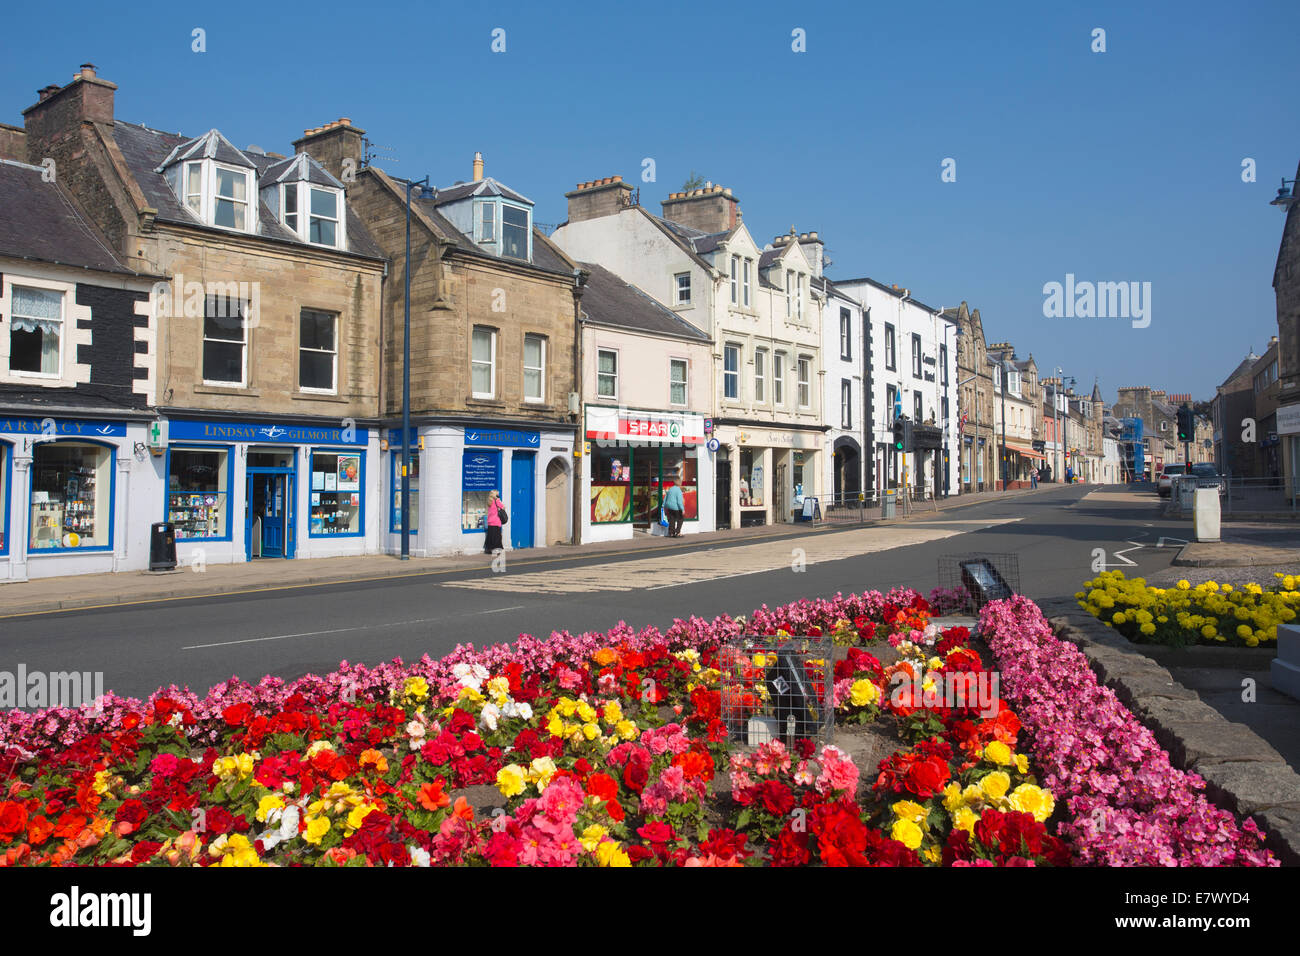 Selkirk, High Street, The Royal and Ancient Burgh of Selkirk, Scottish Borders, Scotland, UK - Stock Image